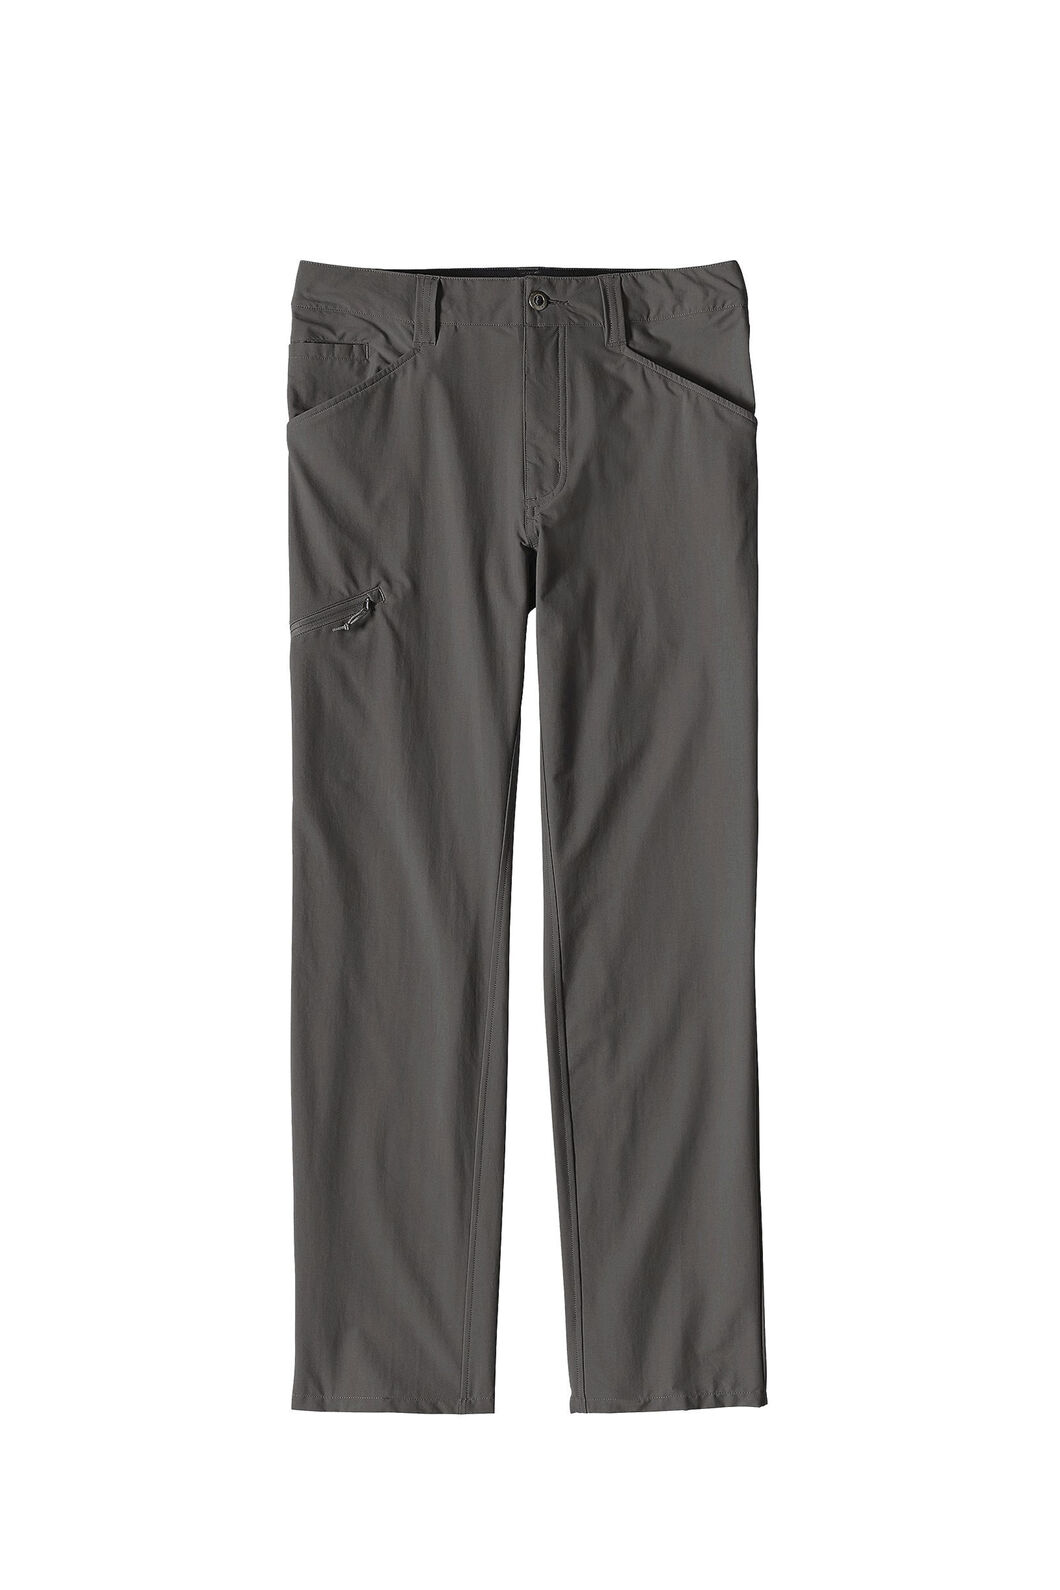 Patagonia Quandary Pants (regular) — Men's, FORGE GREY, hi-res